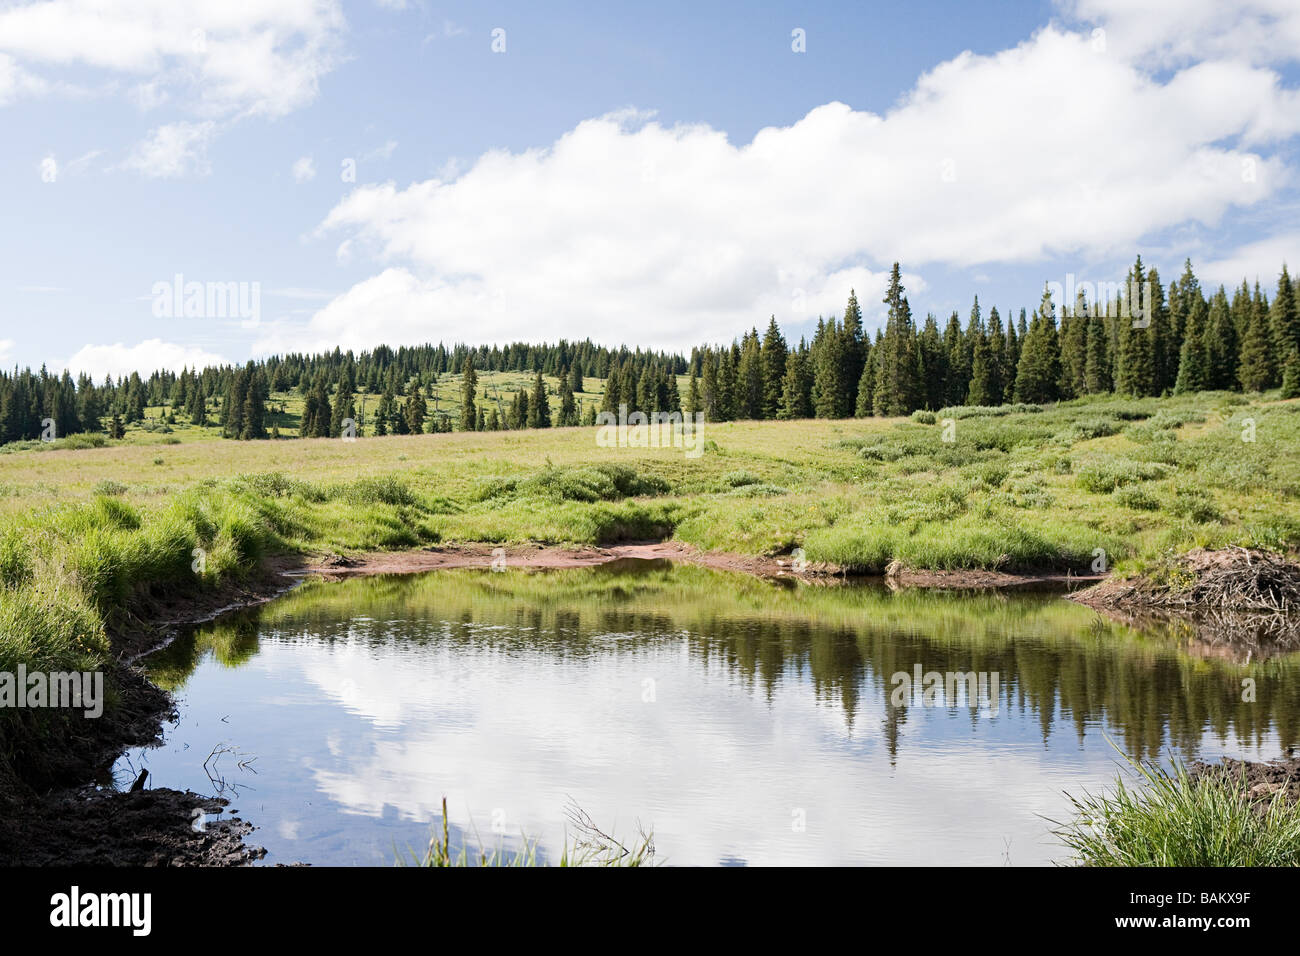 Pond at shrine pass colorado - Stock Image